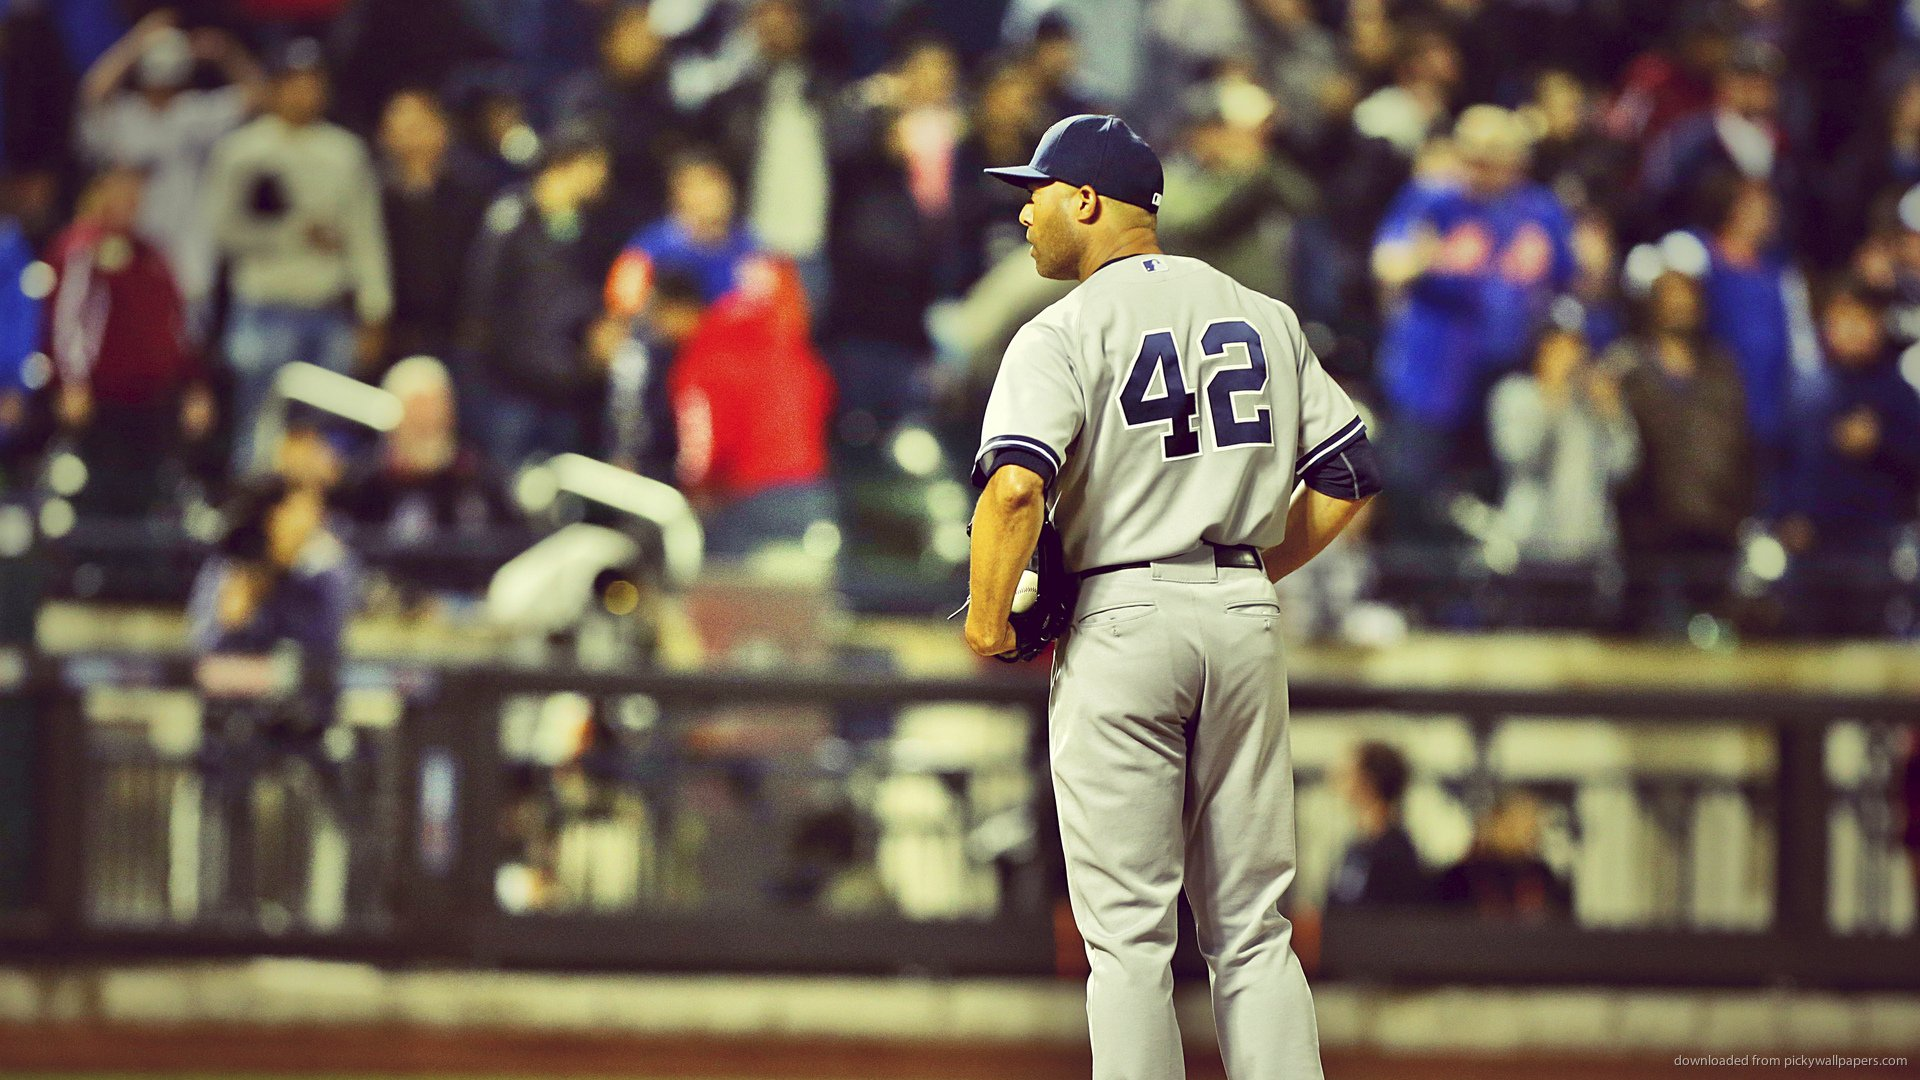 Download 1920x1080 Mariano Rivera 42 On Position Wallpaper